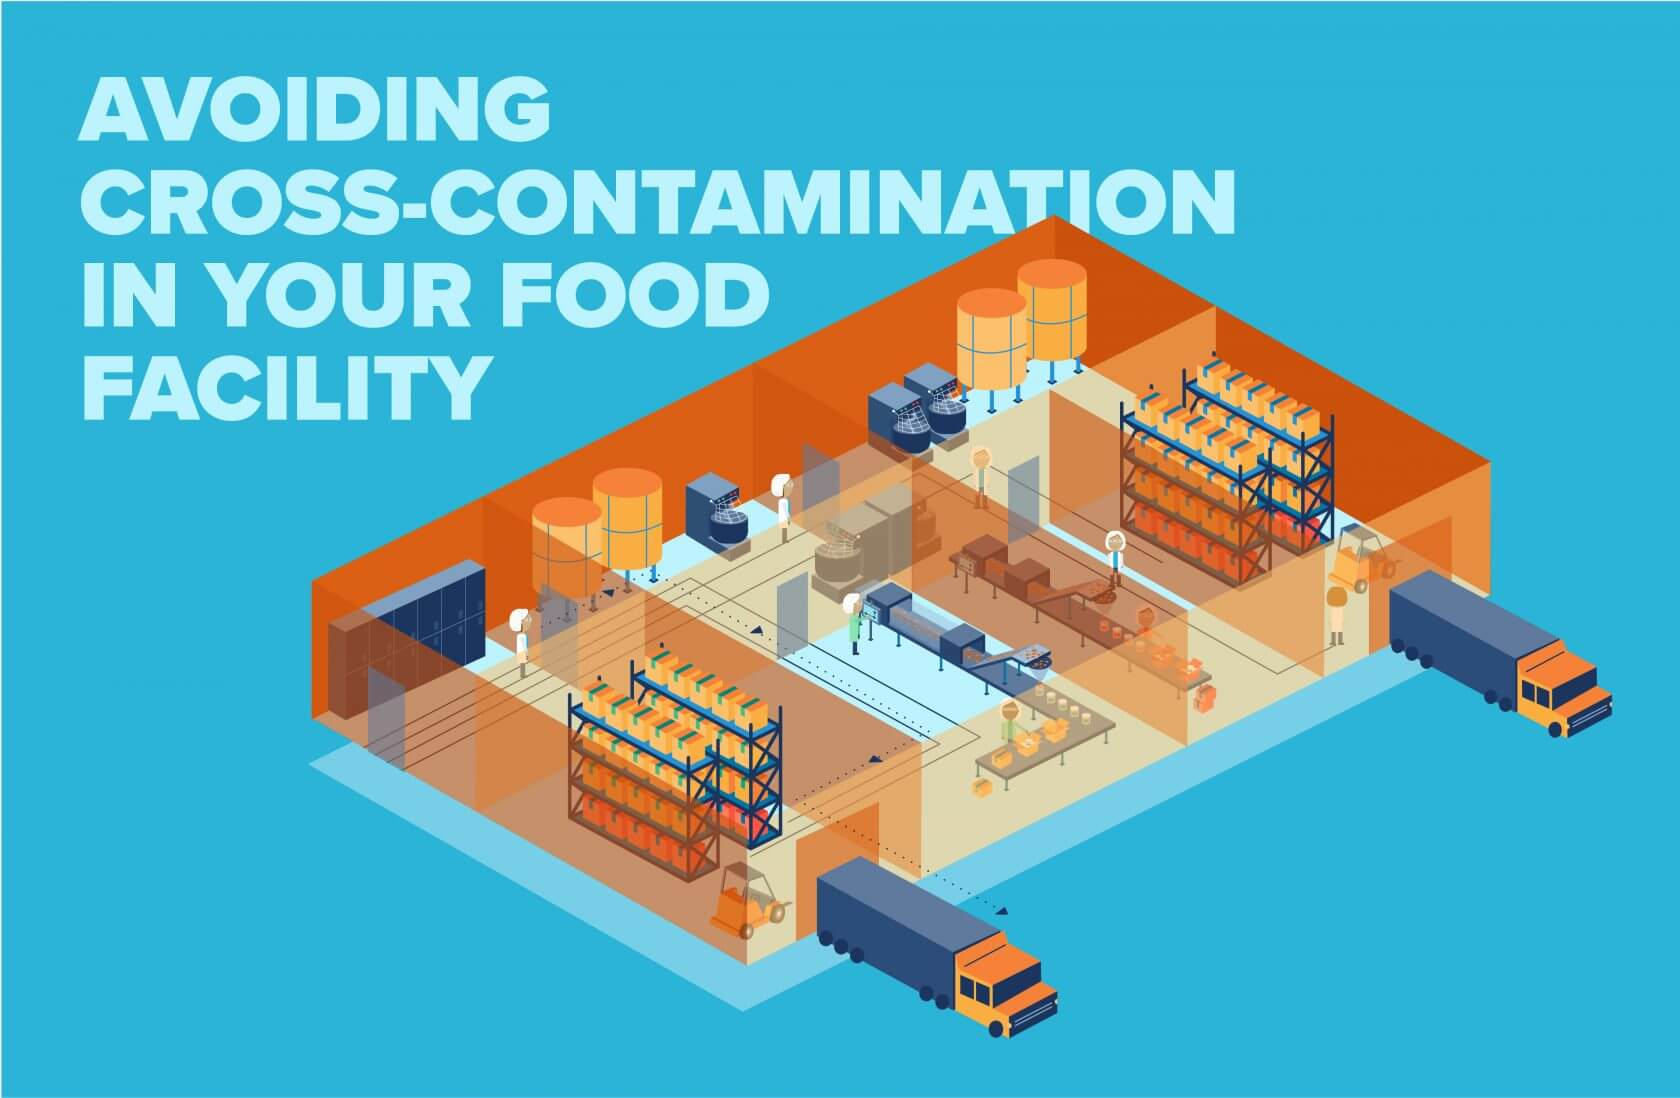 Food manufacturing facility layout showing how to avoid cross-contamination